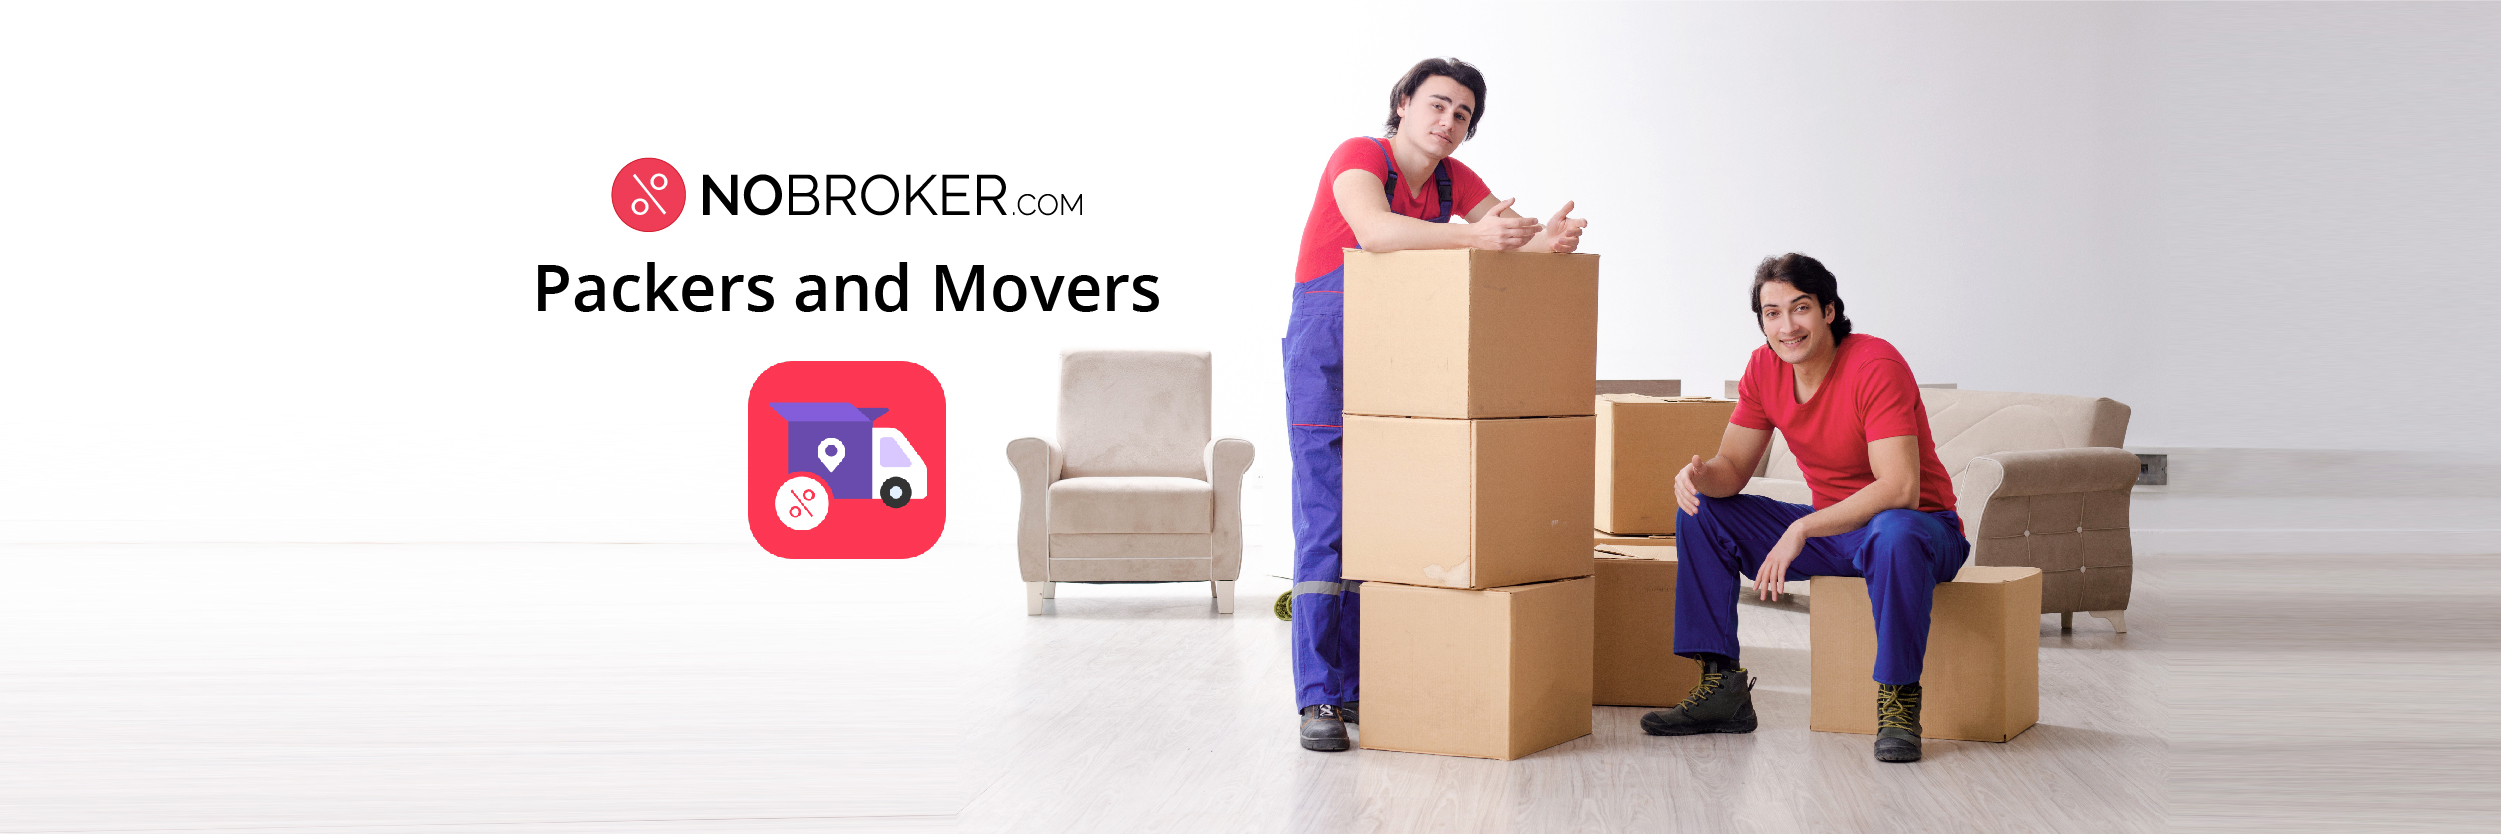 Packers & Movers App by NoBroker